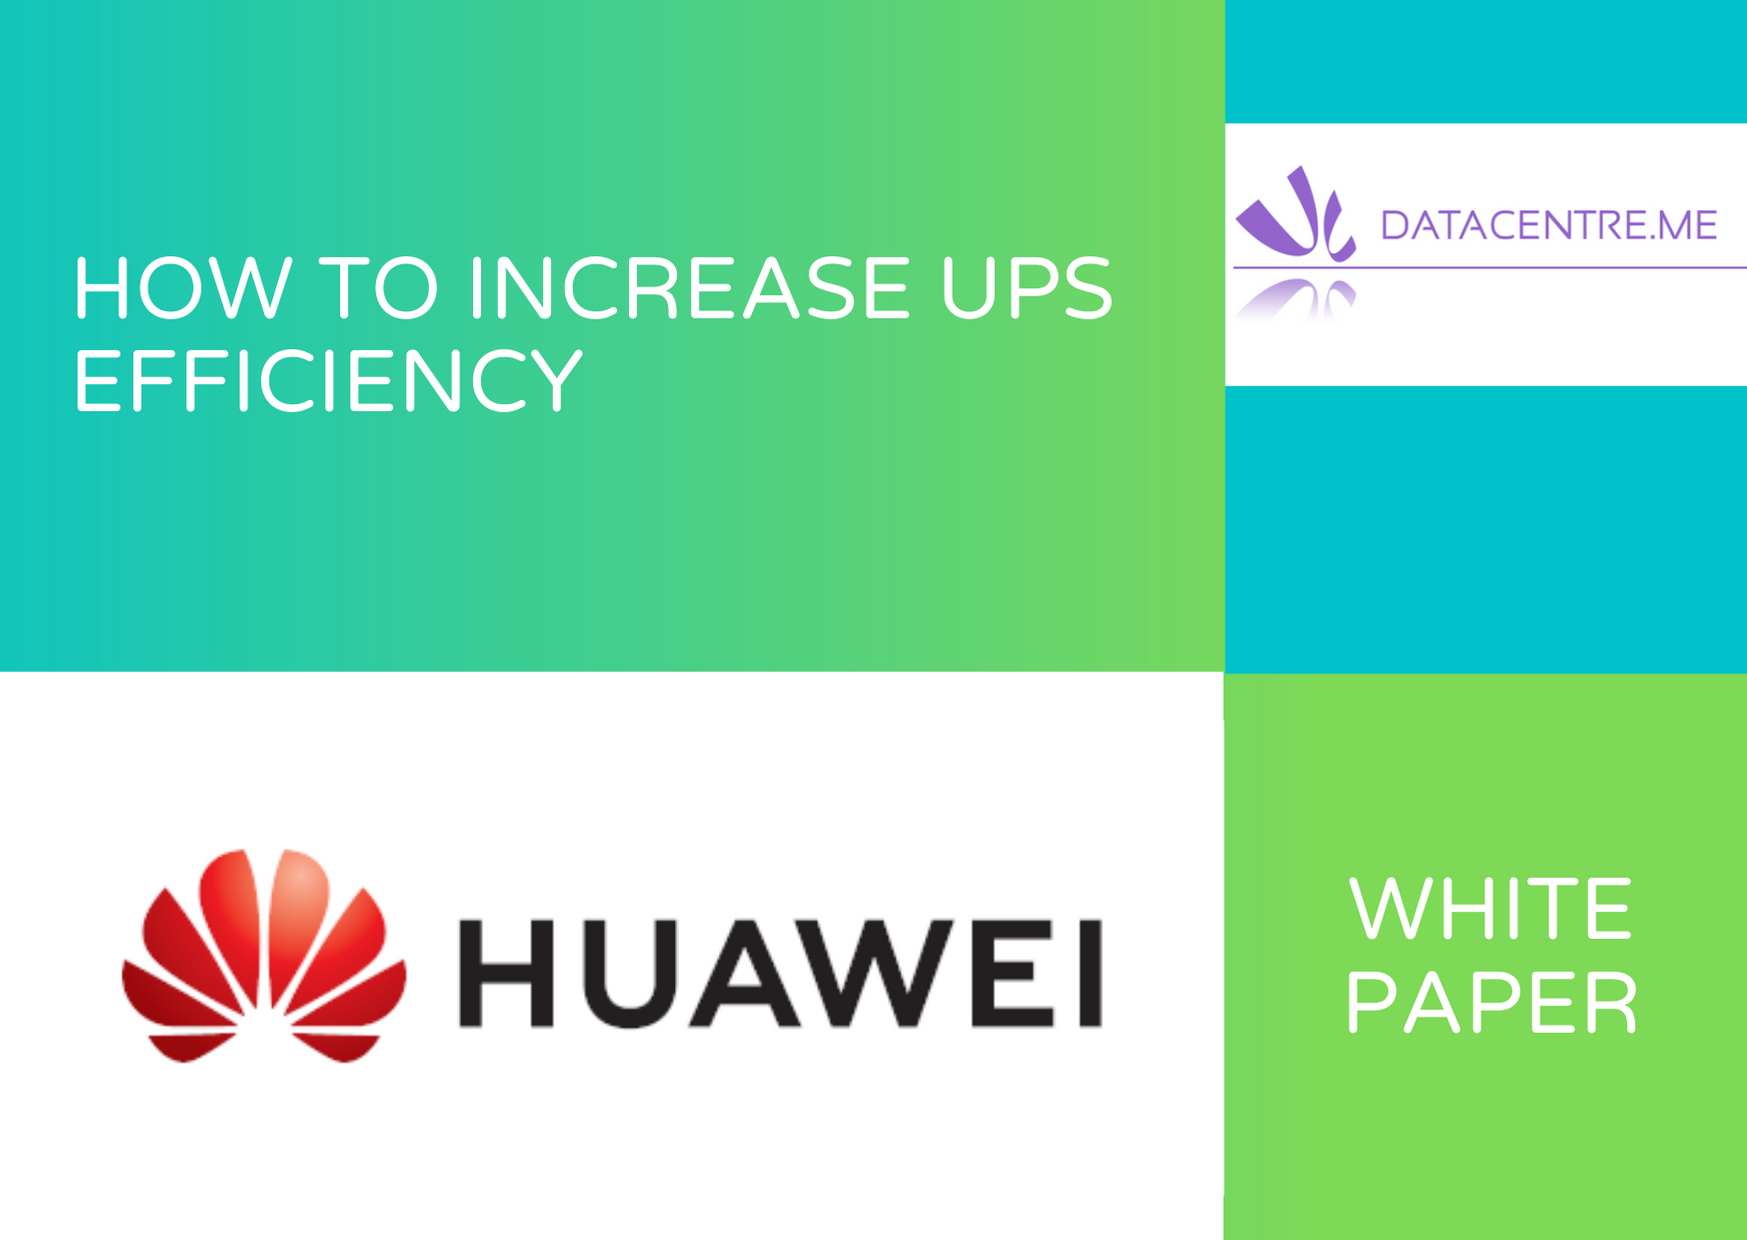 Huawei White Paper 3 How to increase UPS Efficiency